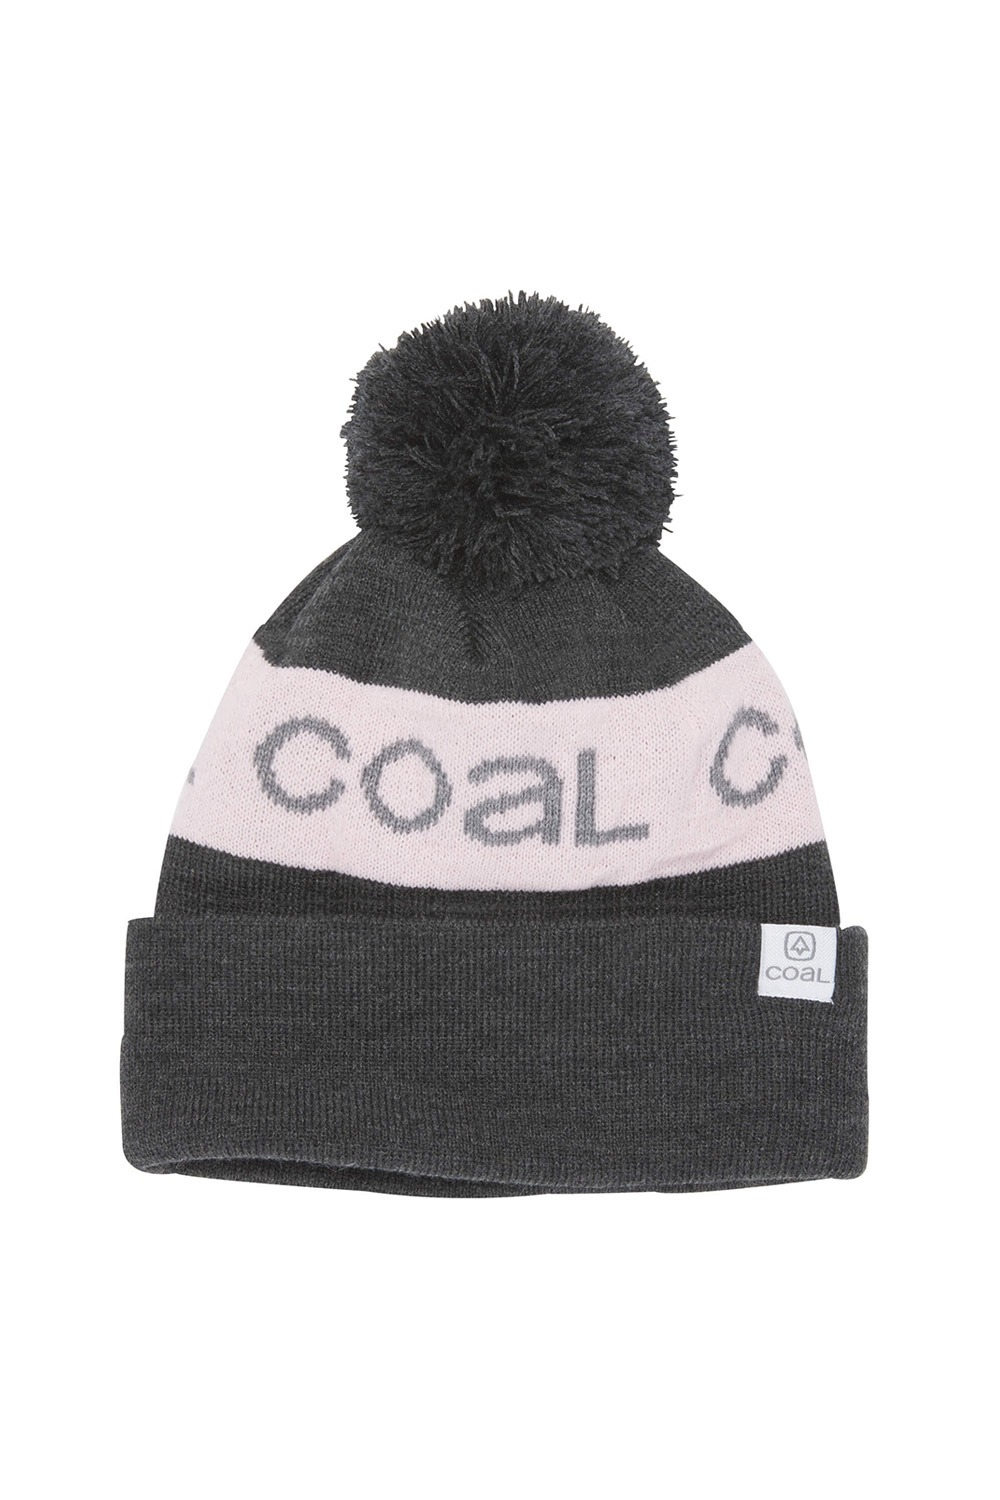 2021 콜 팀 폼비니 모자  COAL THE TEAM BEANIE_CHR (CHARCOAL)_DICA012CH